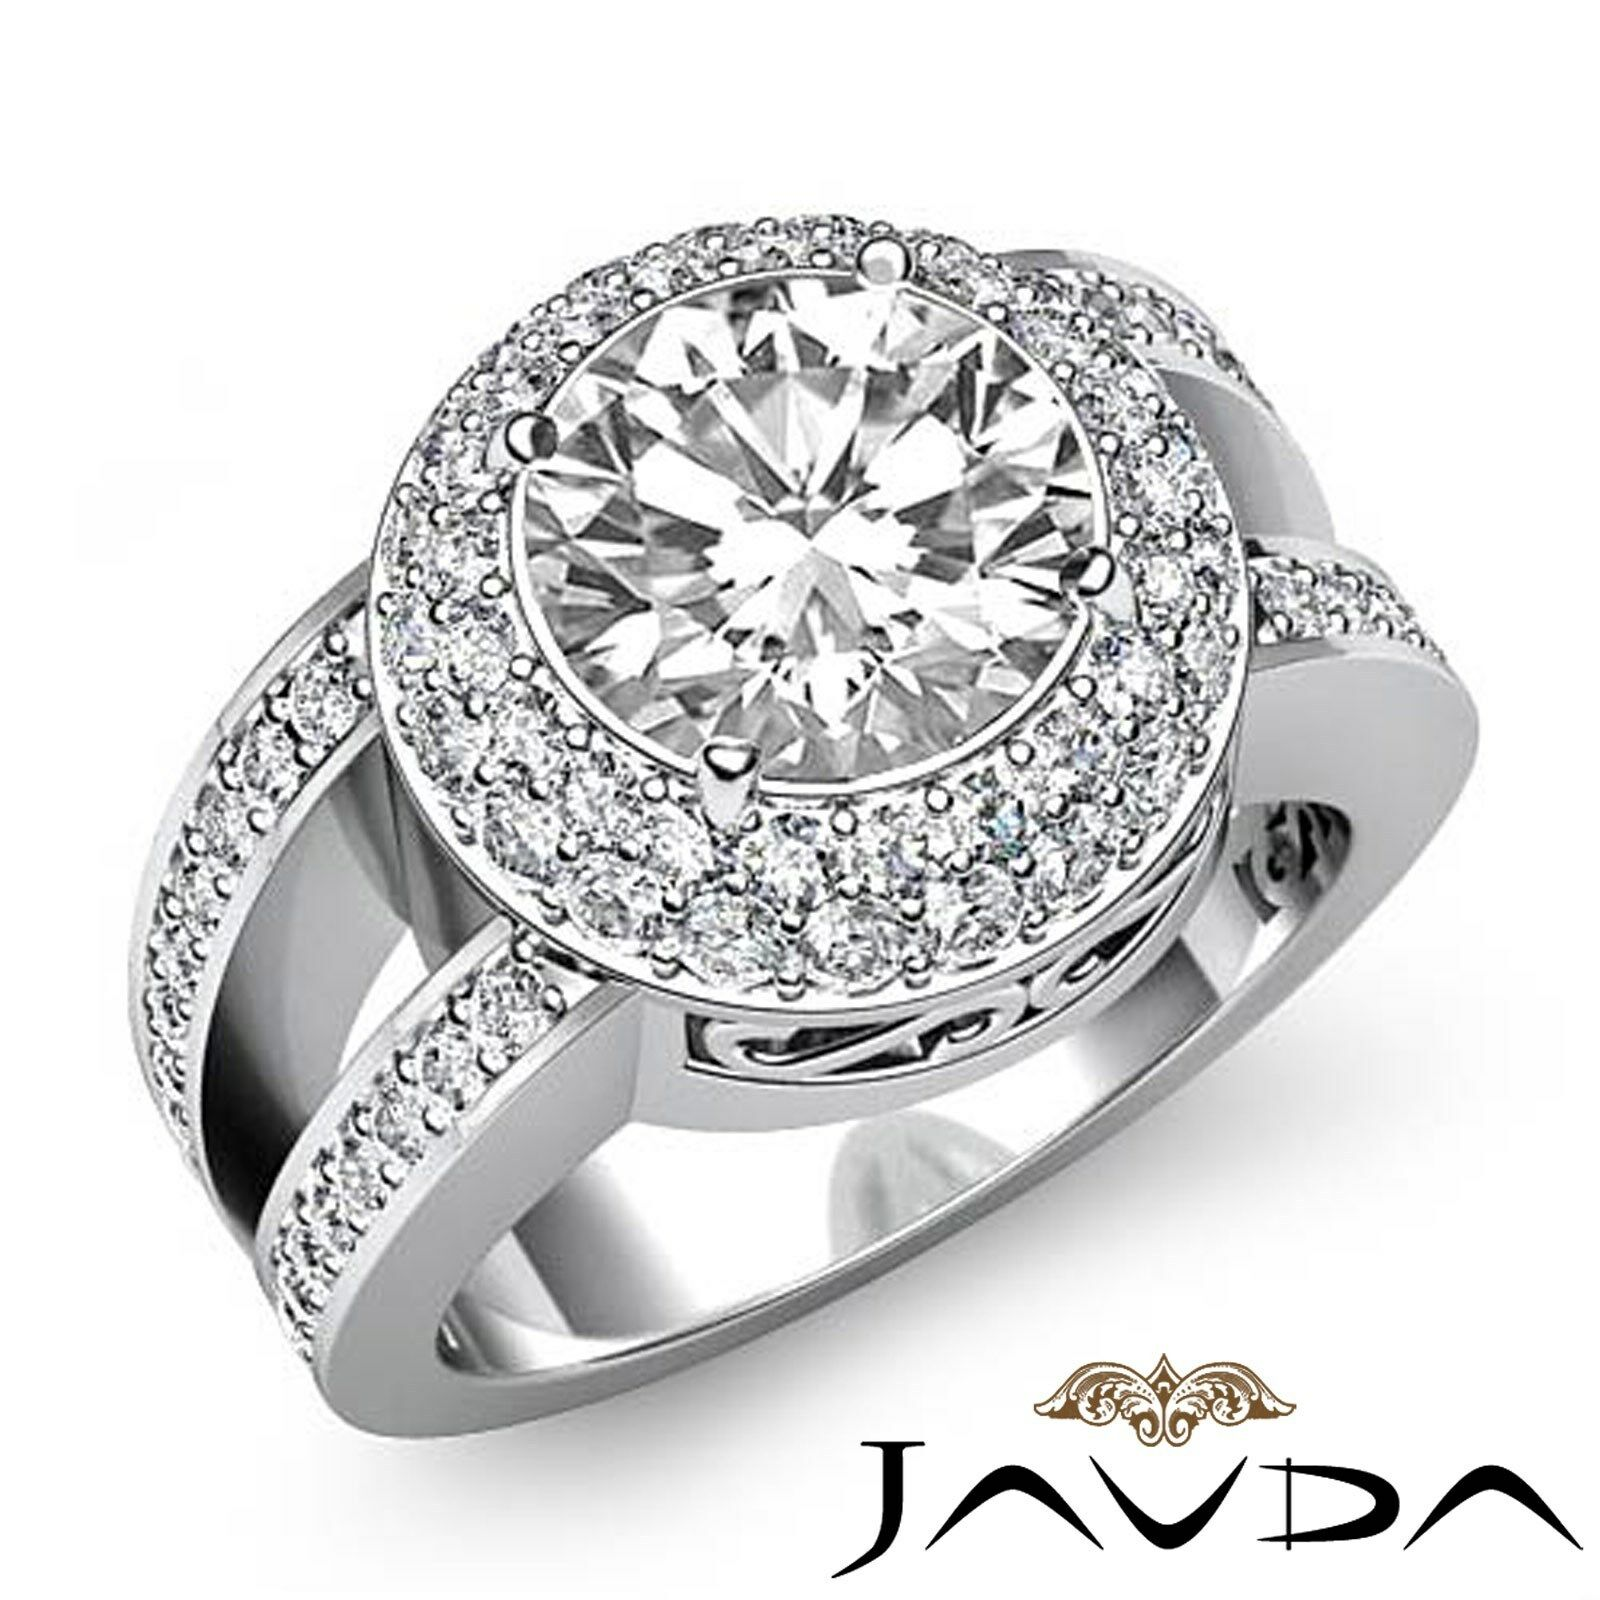 Double Halo Round Cut Diamond Engagement Split Shank Ring GIA I Color VS2 2.85Ct